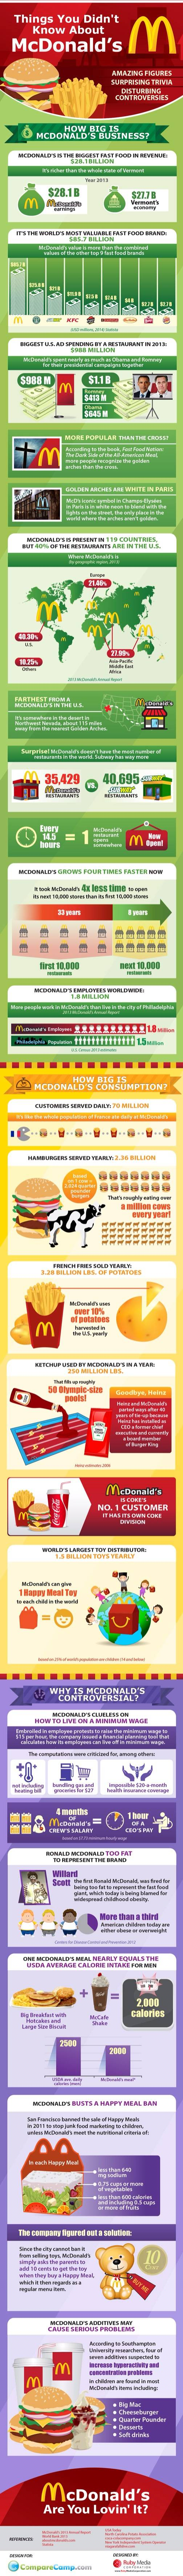 Things You Never Knew About McDonald's